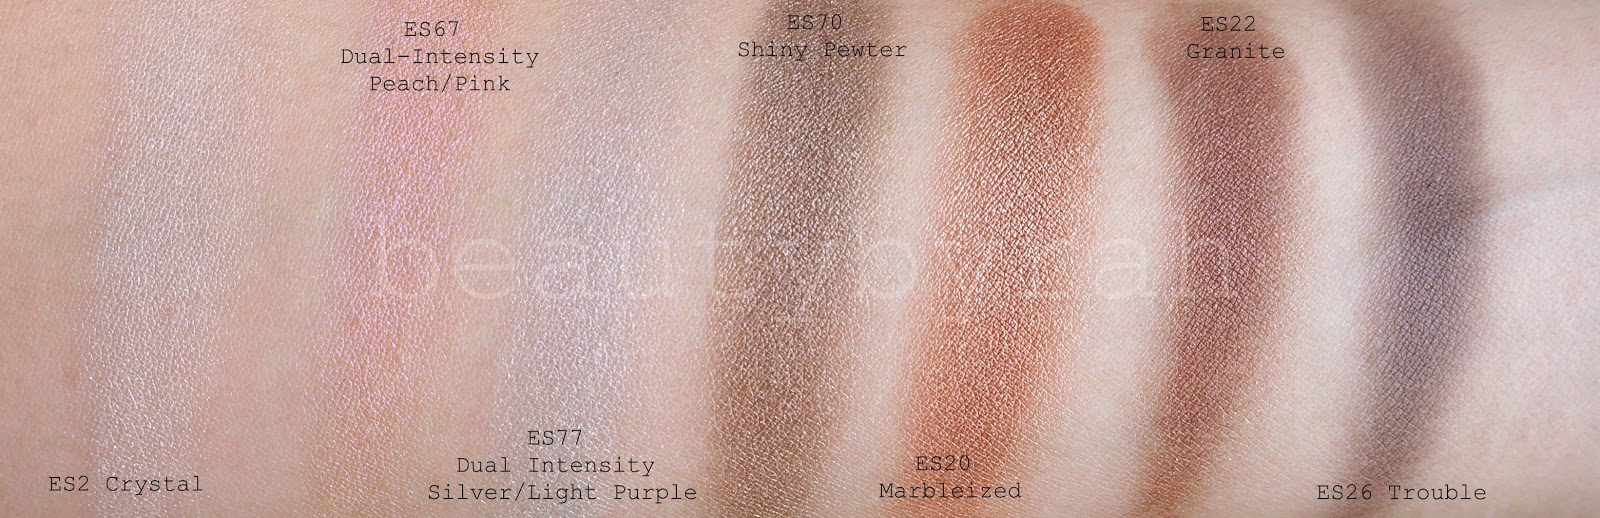 morphe brushes single eyeshadows review and swatches neutral shades